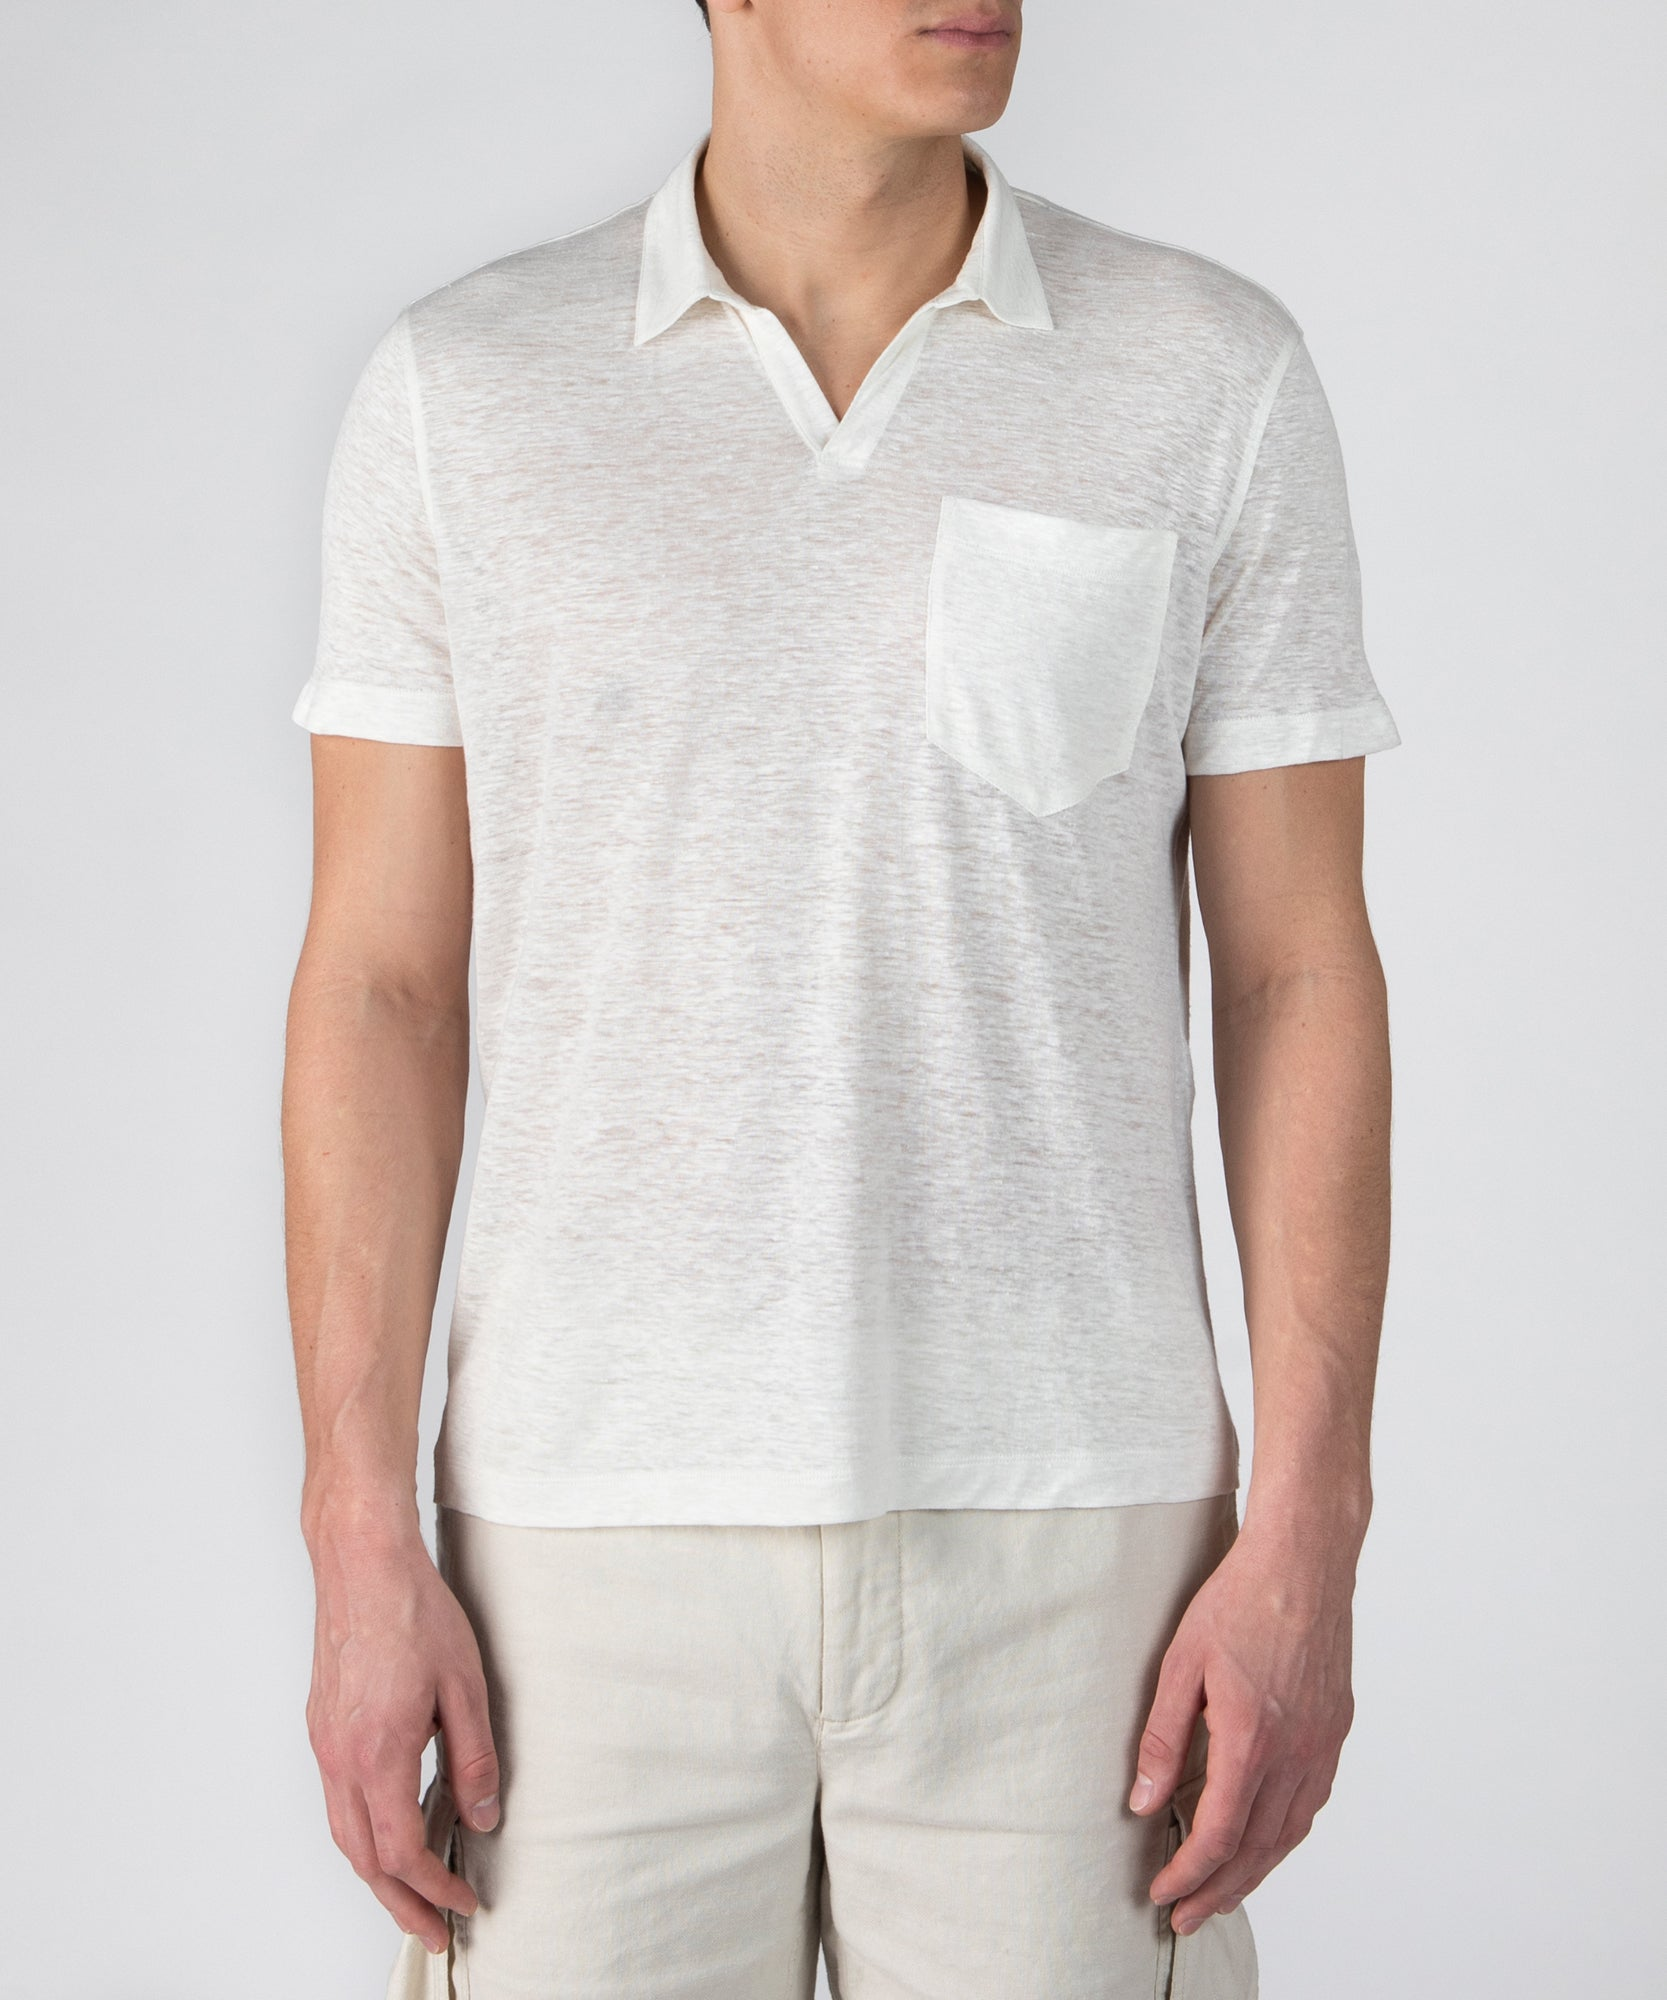 Chalk Linen Jersey Short Sleeve Polo- Men's Polo Shirt by ATM Anthony Thomas Melillo